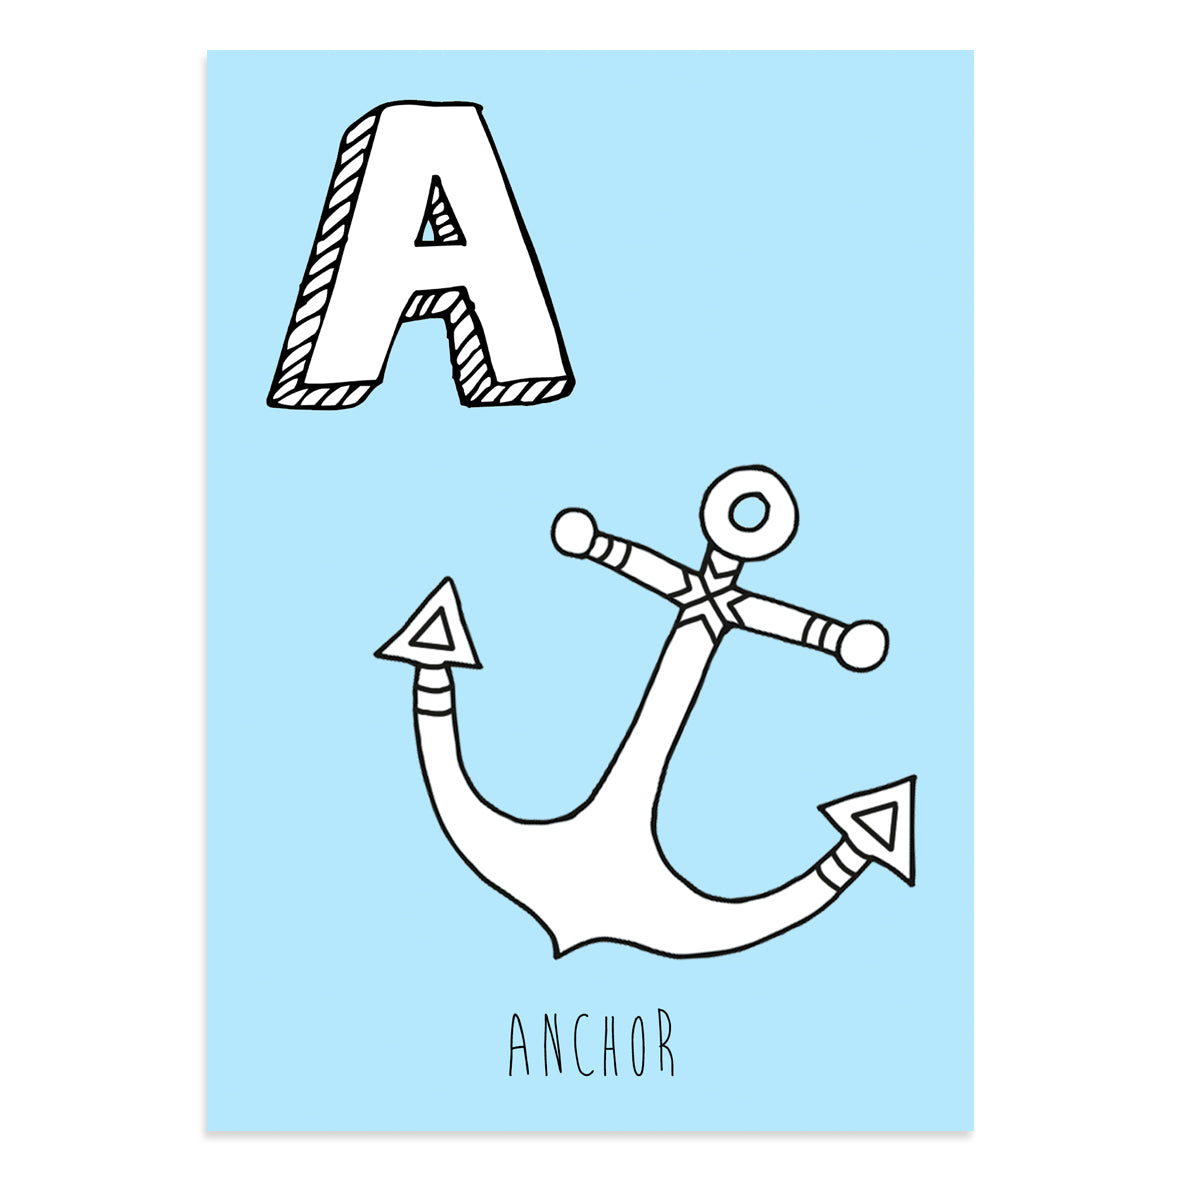 Blue postcard featuring the letter A for anchor